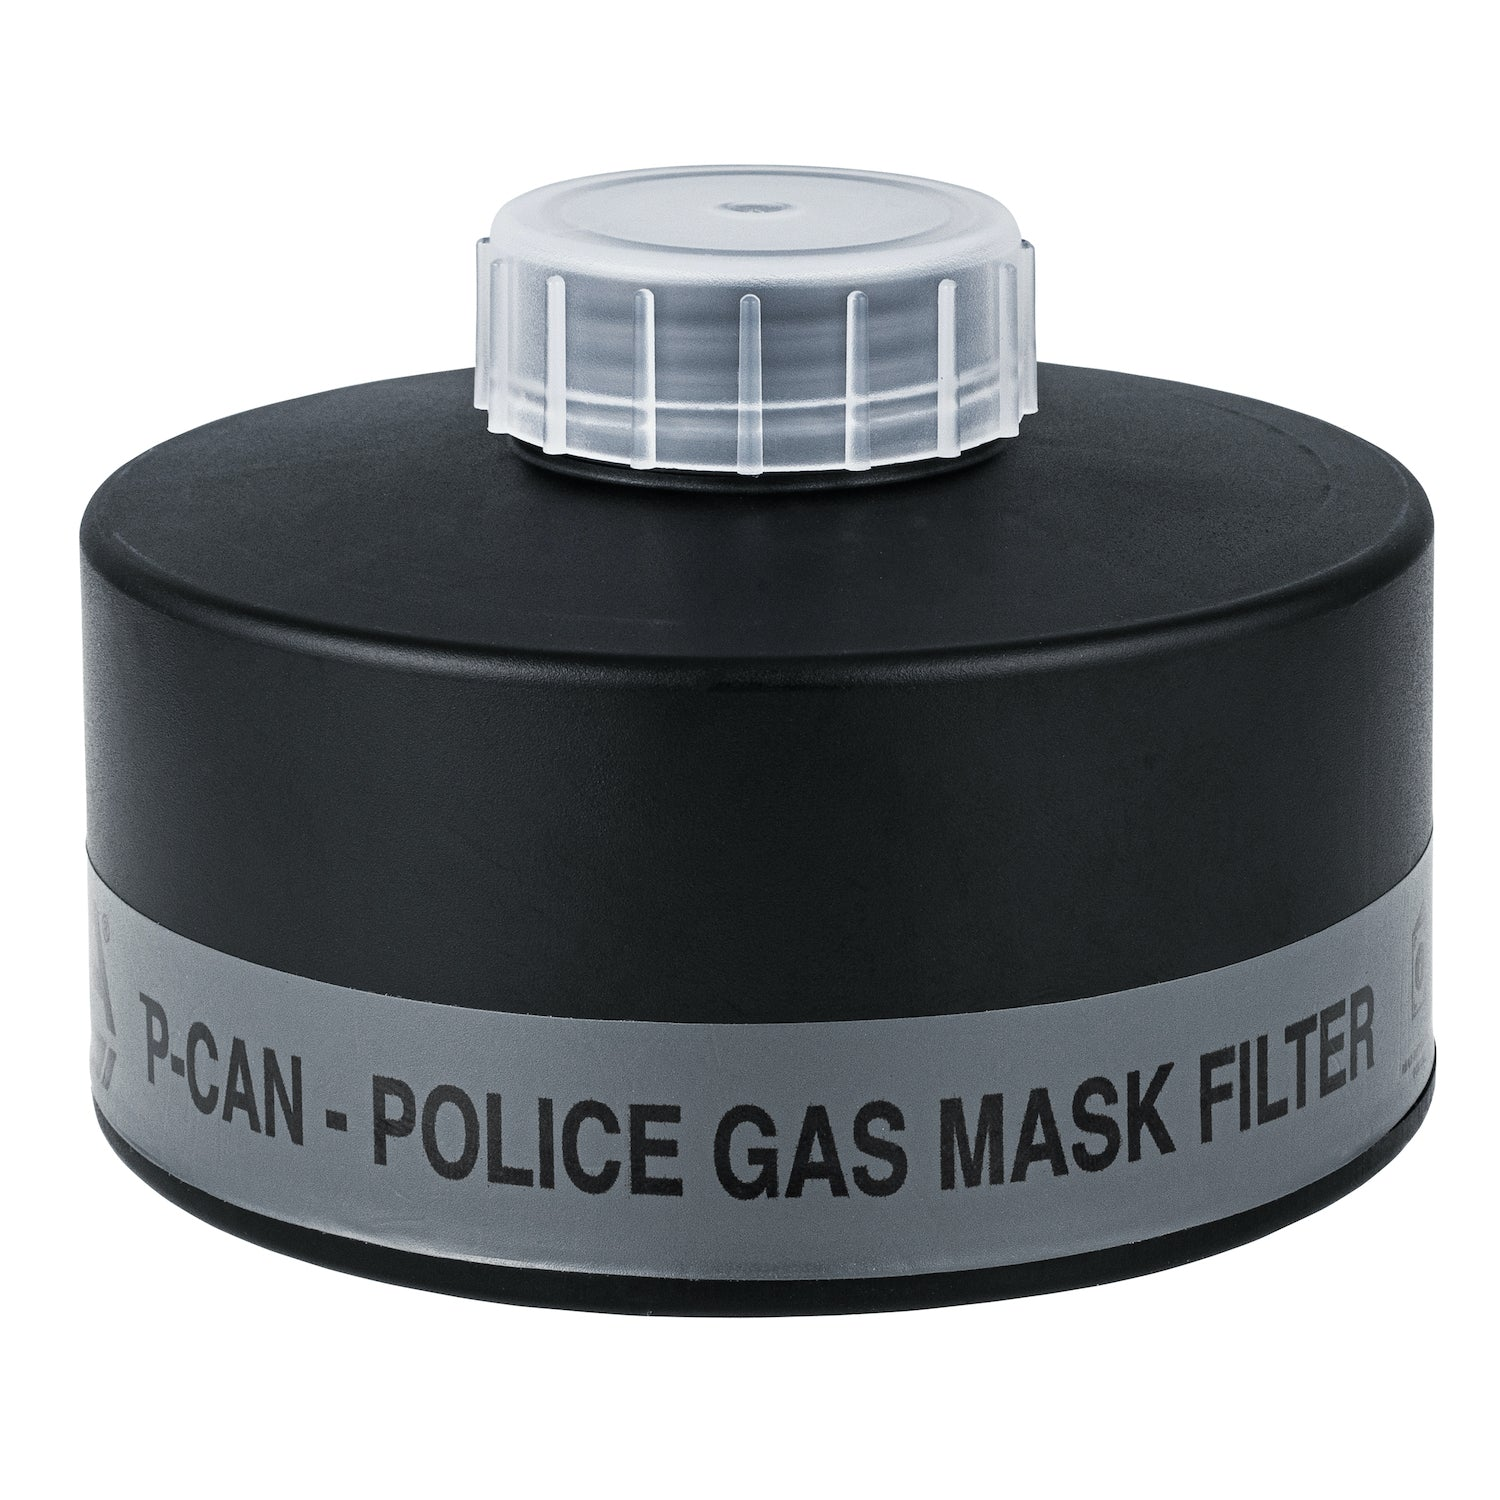 P-CAN Police Gas Mask Filter front view